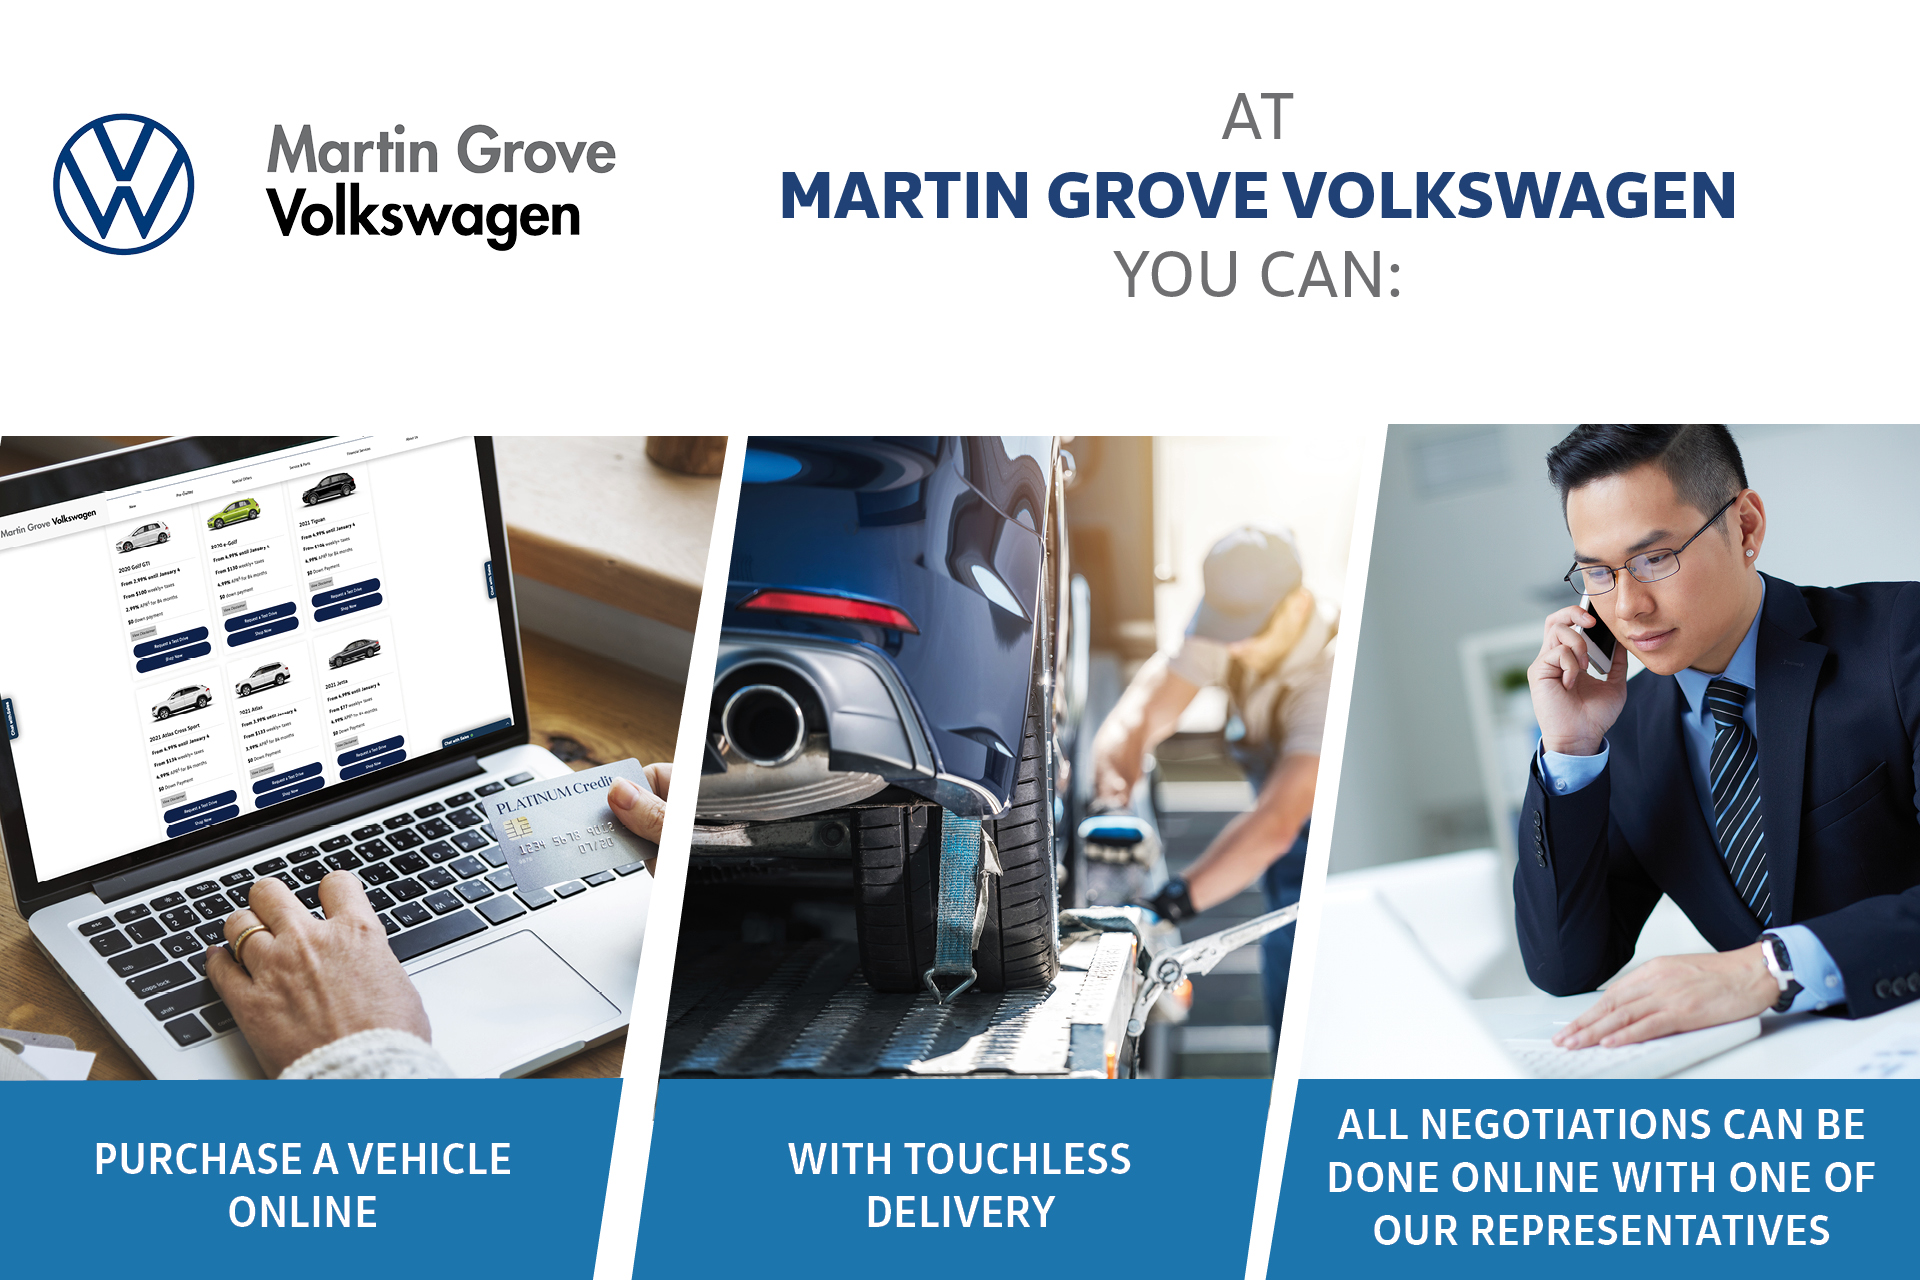 584a 21 Martin Grove Vw Mobile Banners14